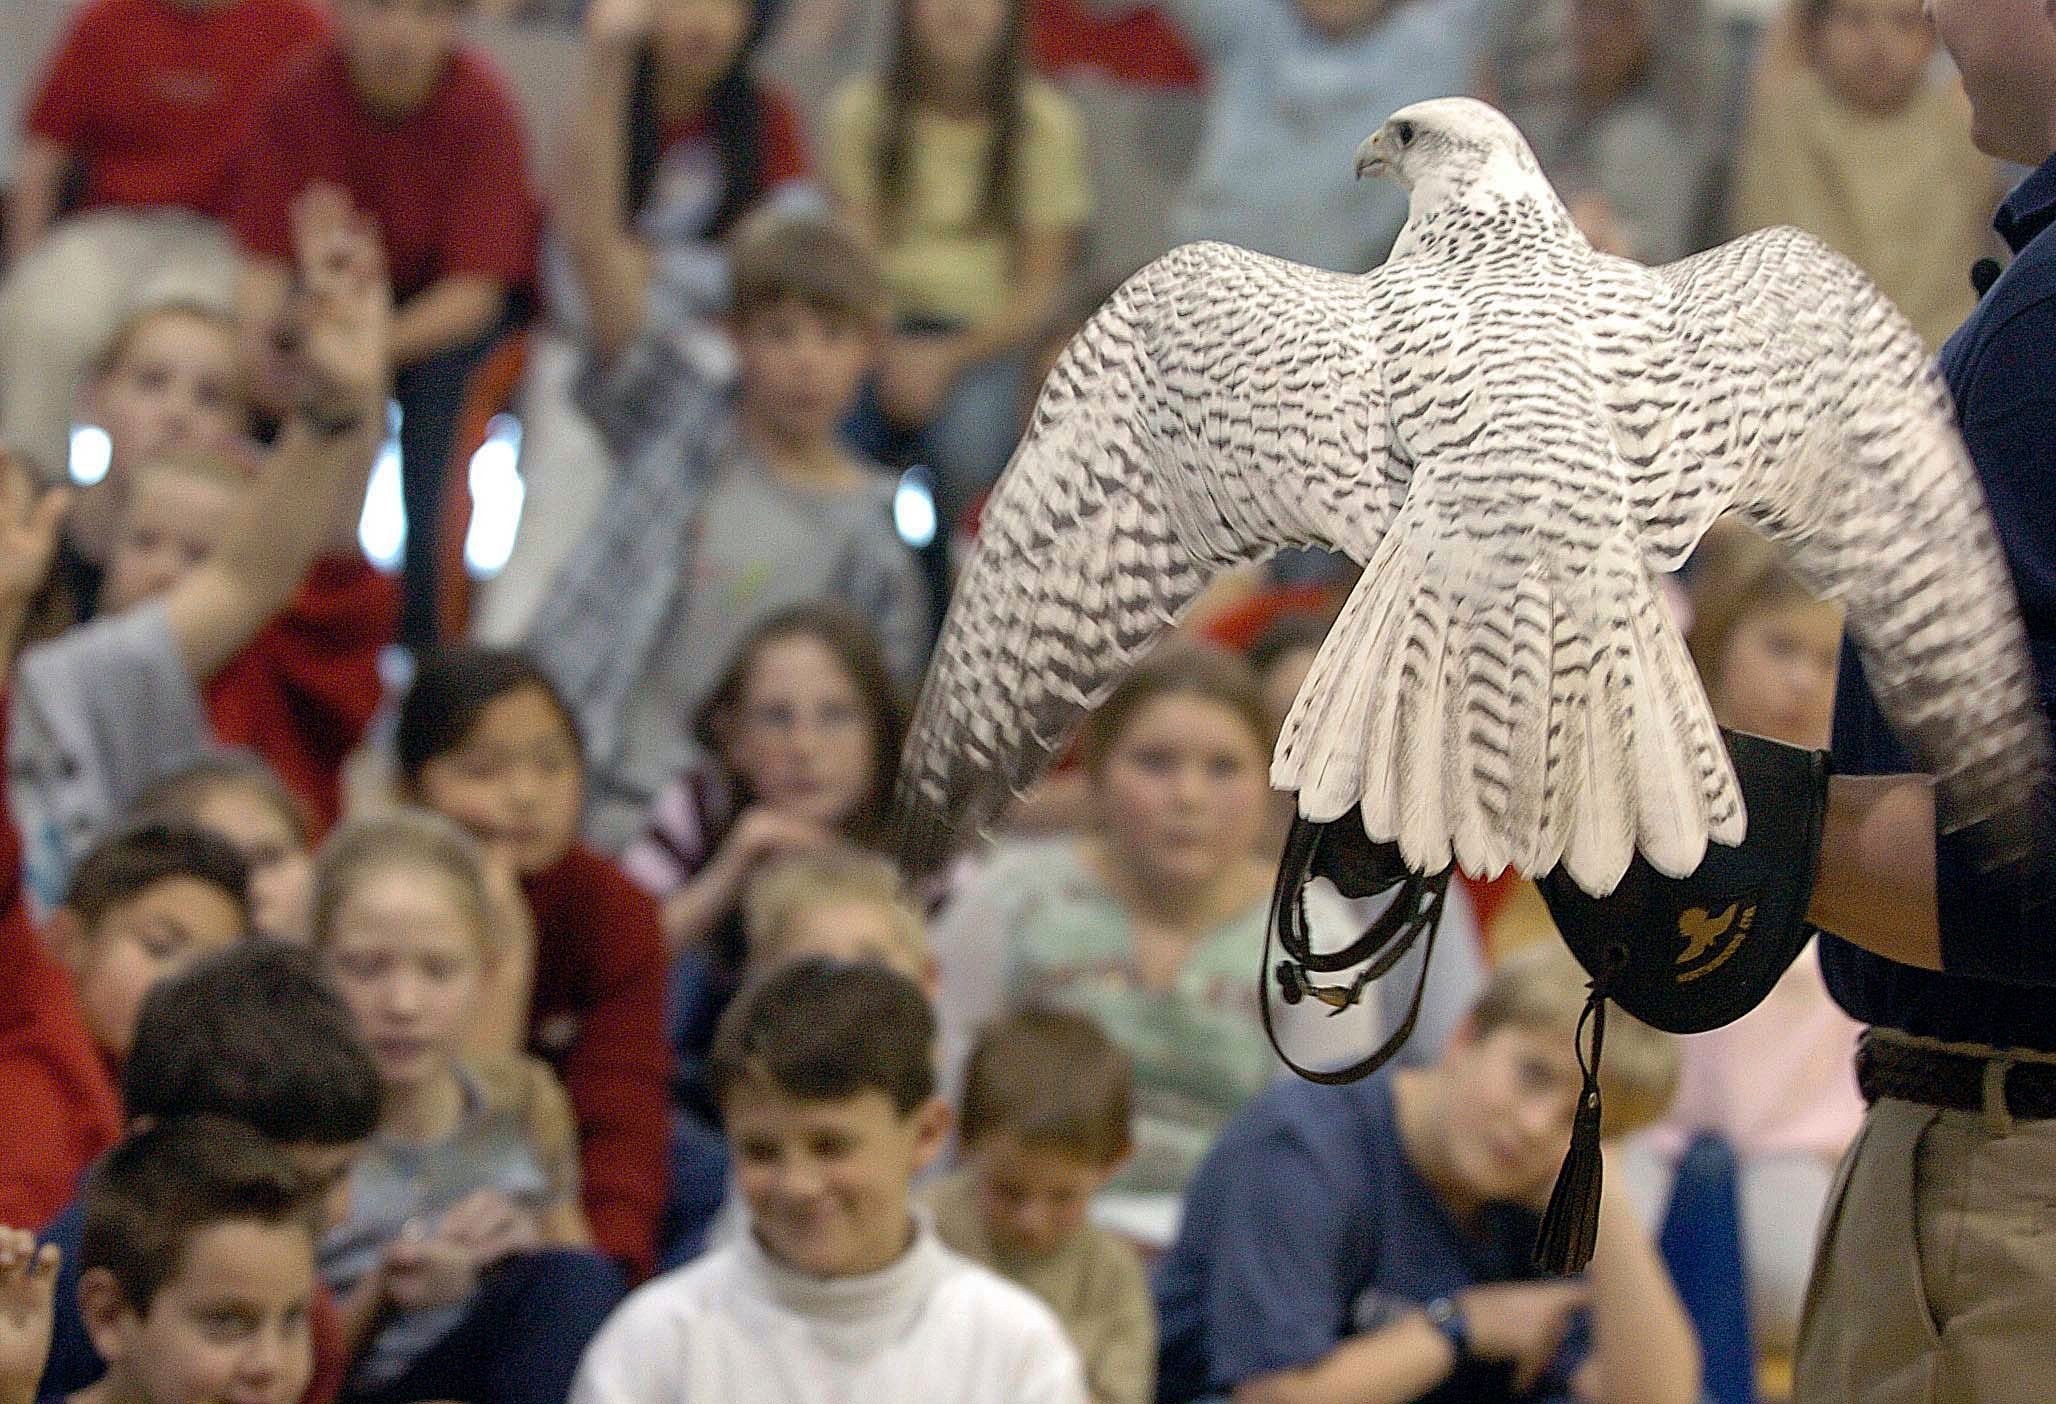 Injured Air Force falcon resting, with recovery expected